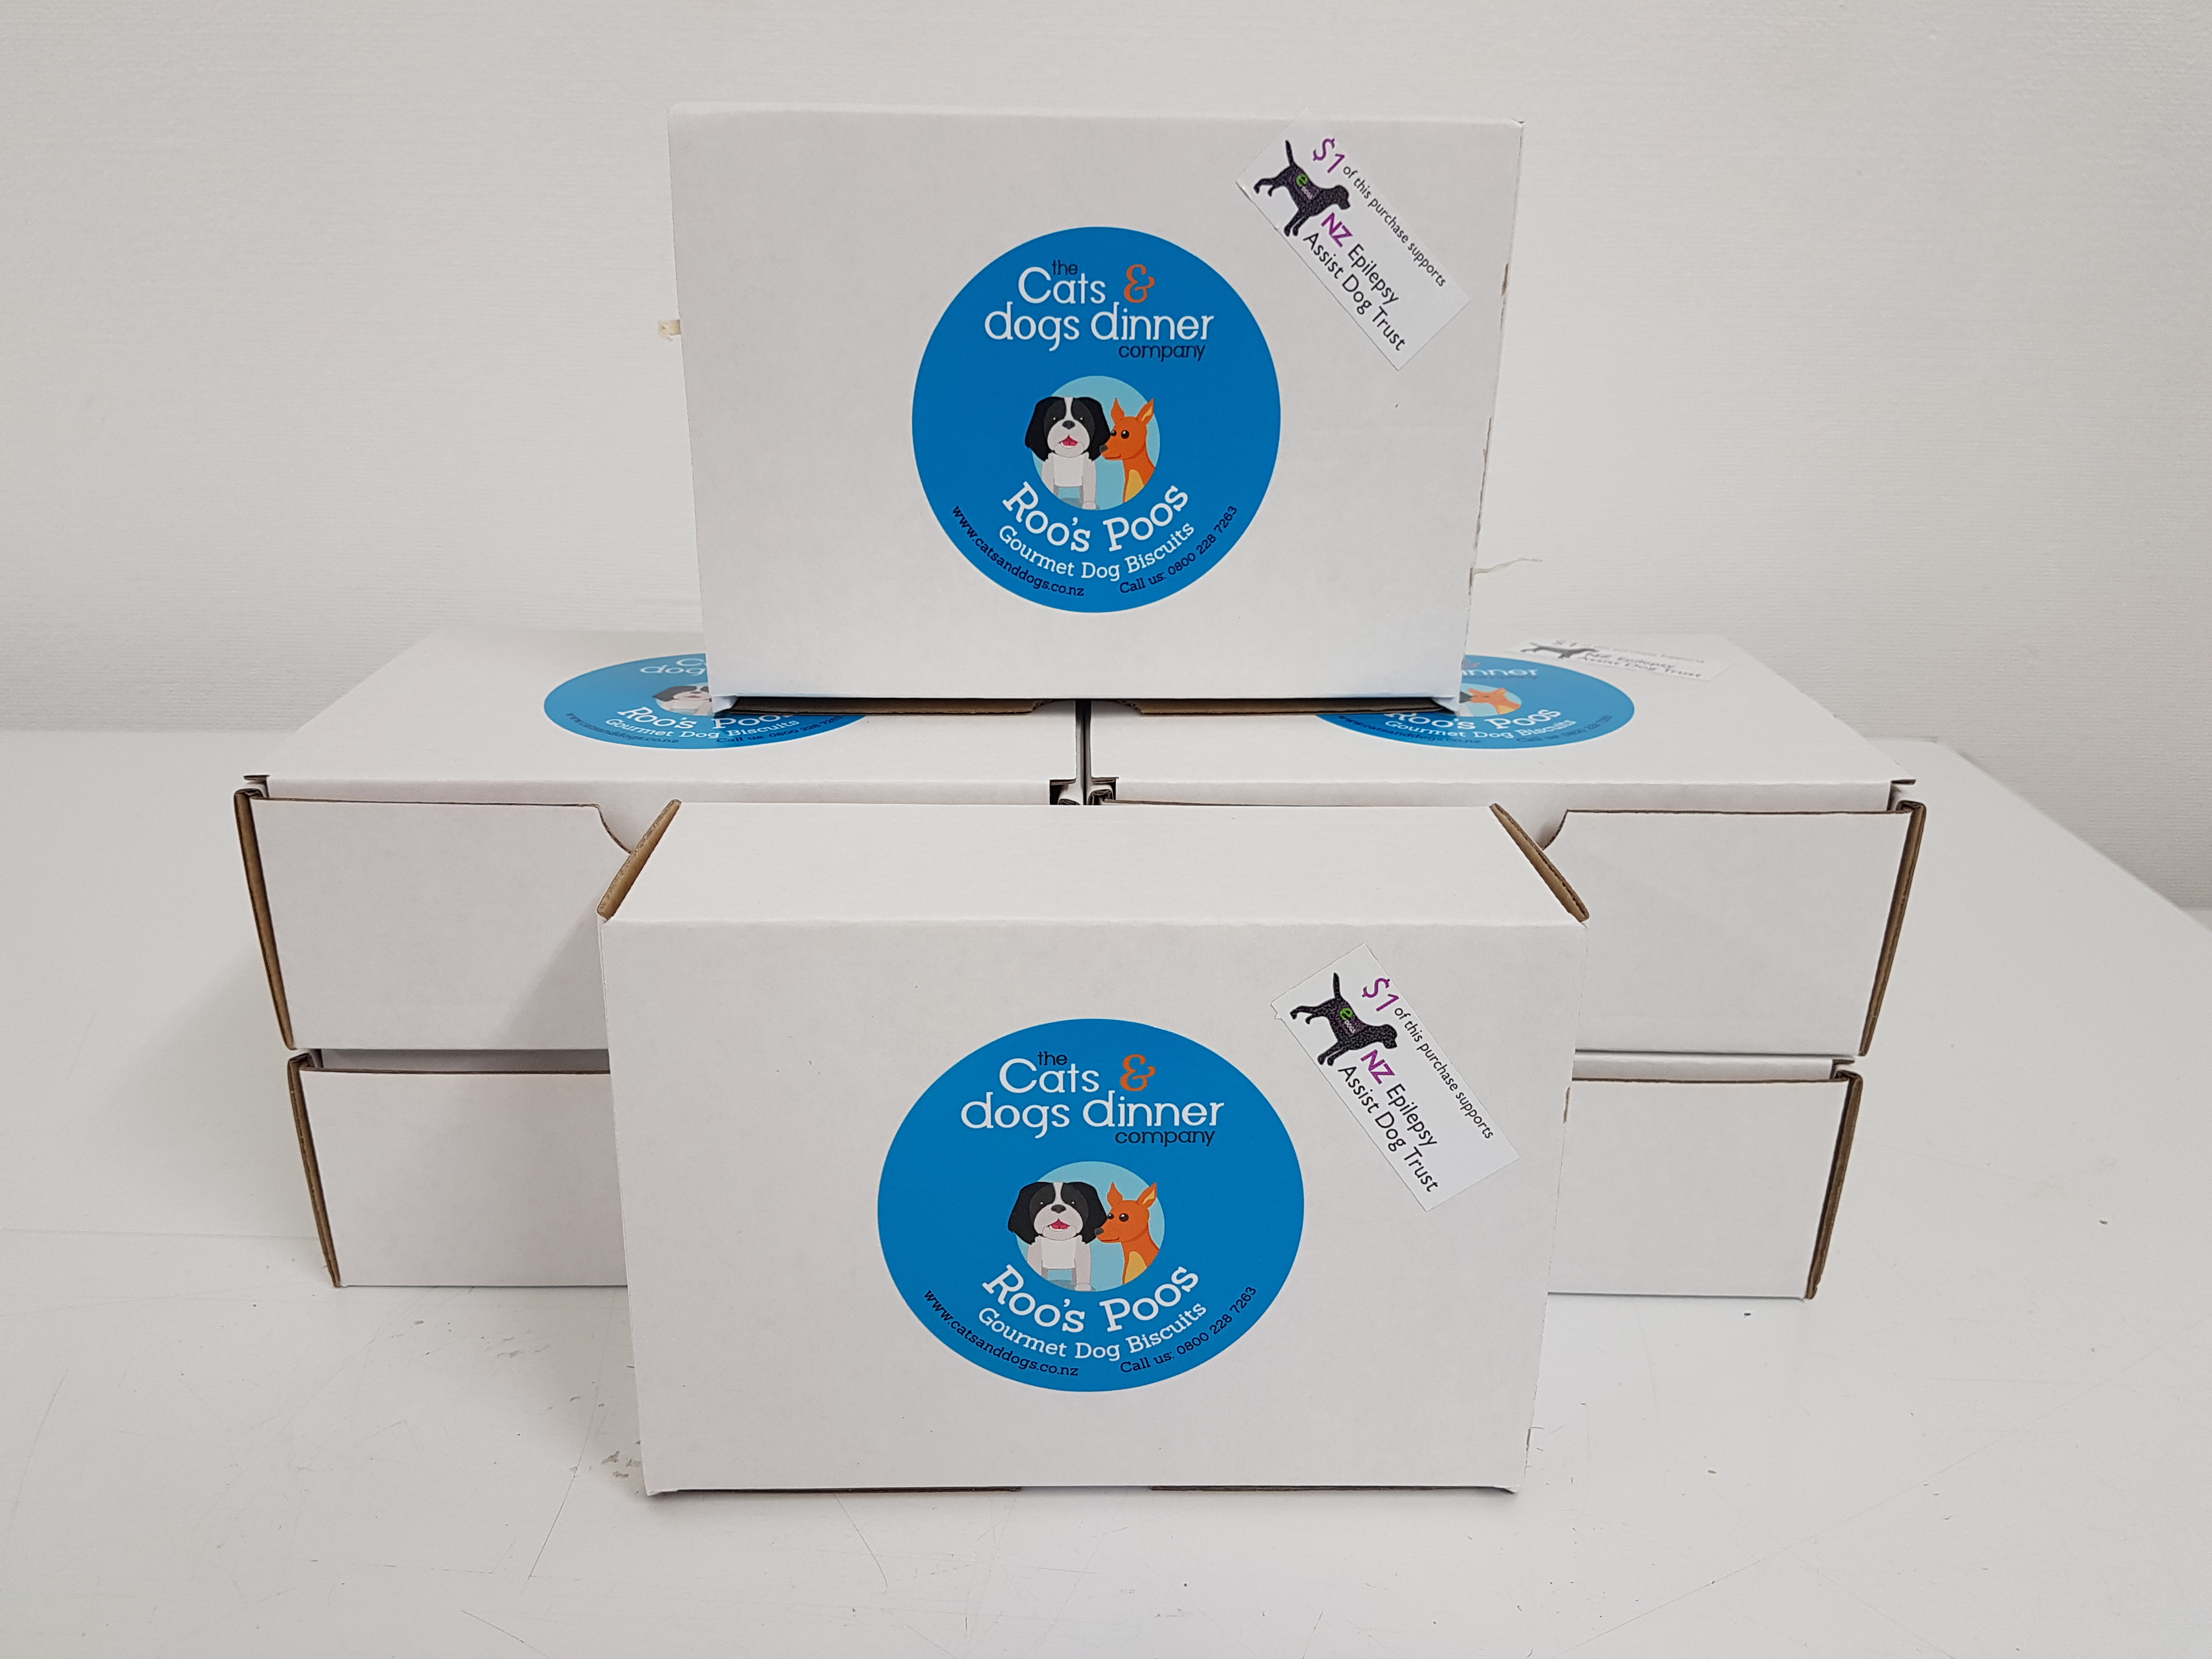 Roos Poos Biscuits (Box of 40) - With $1 Donation to NZ Epilepsy Assist Dog Trust